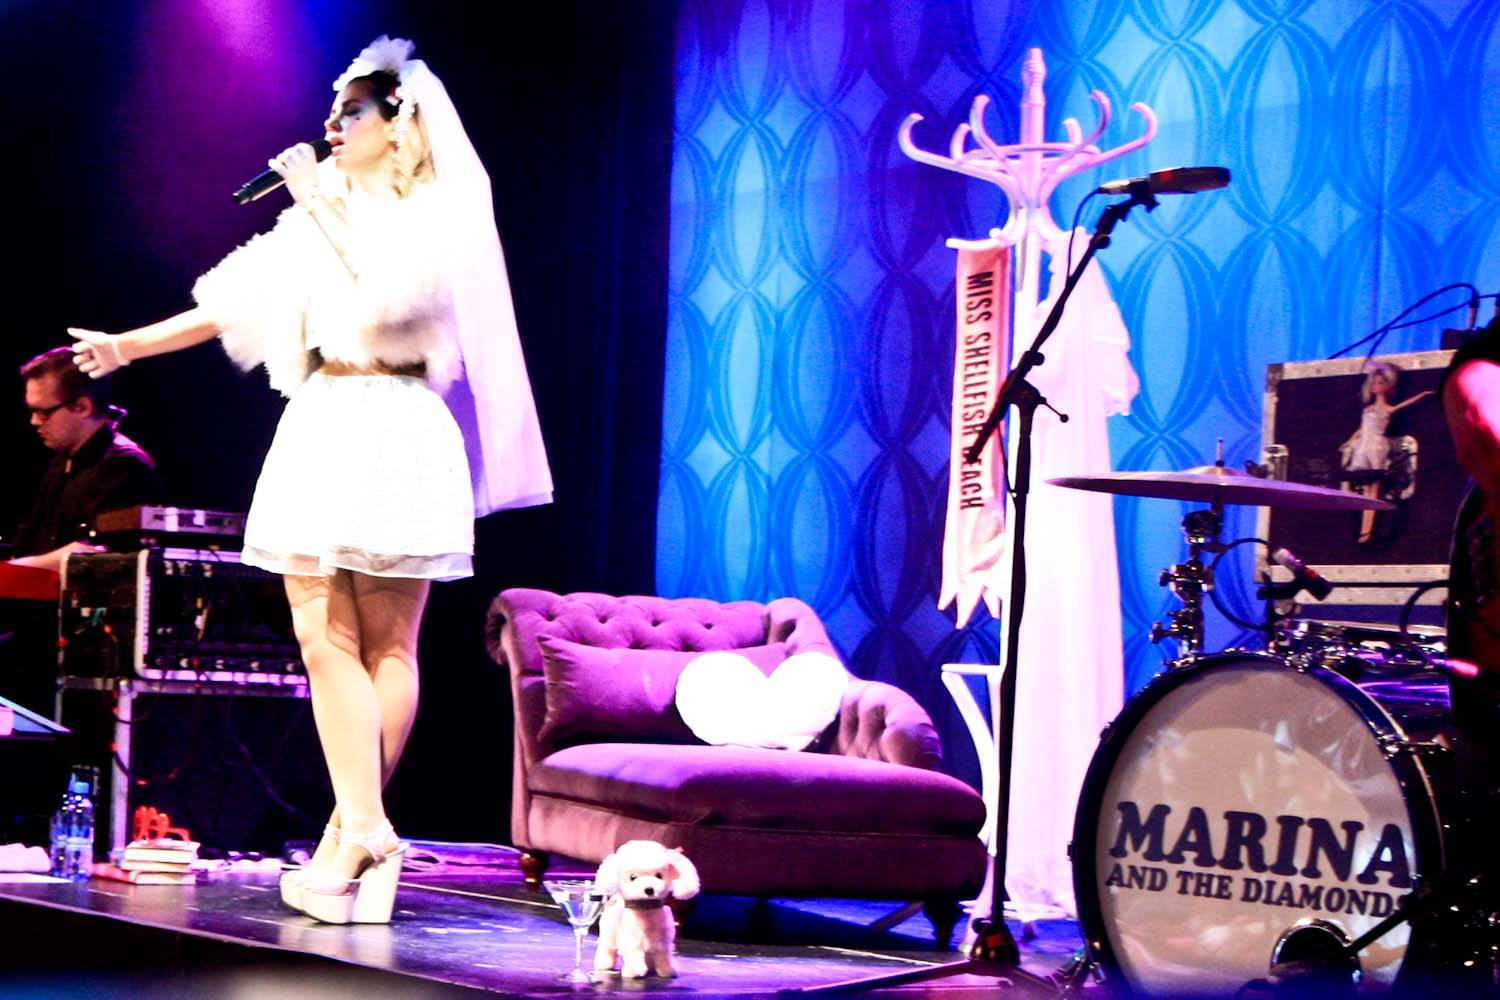 Marina And The Diamonds Tour Canada